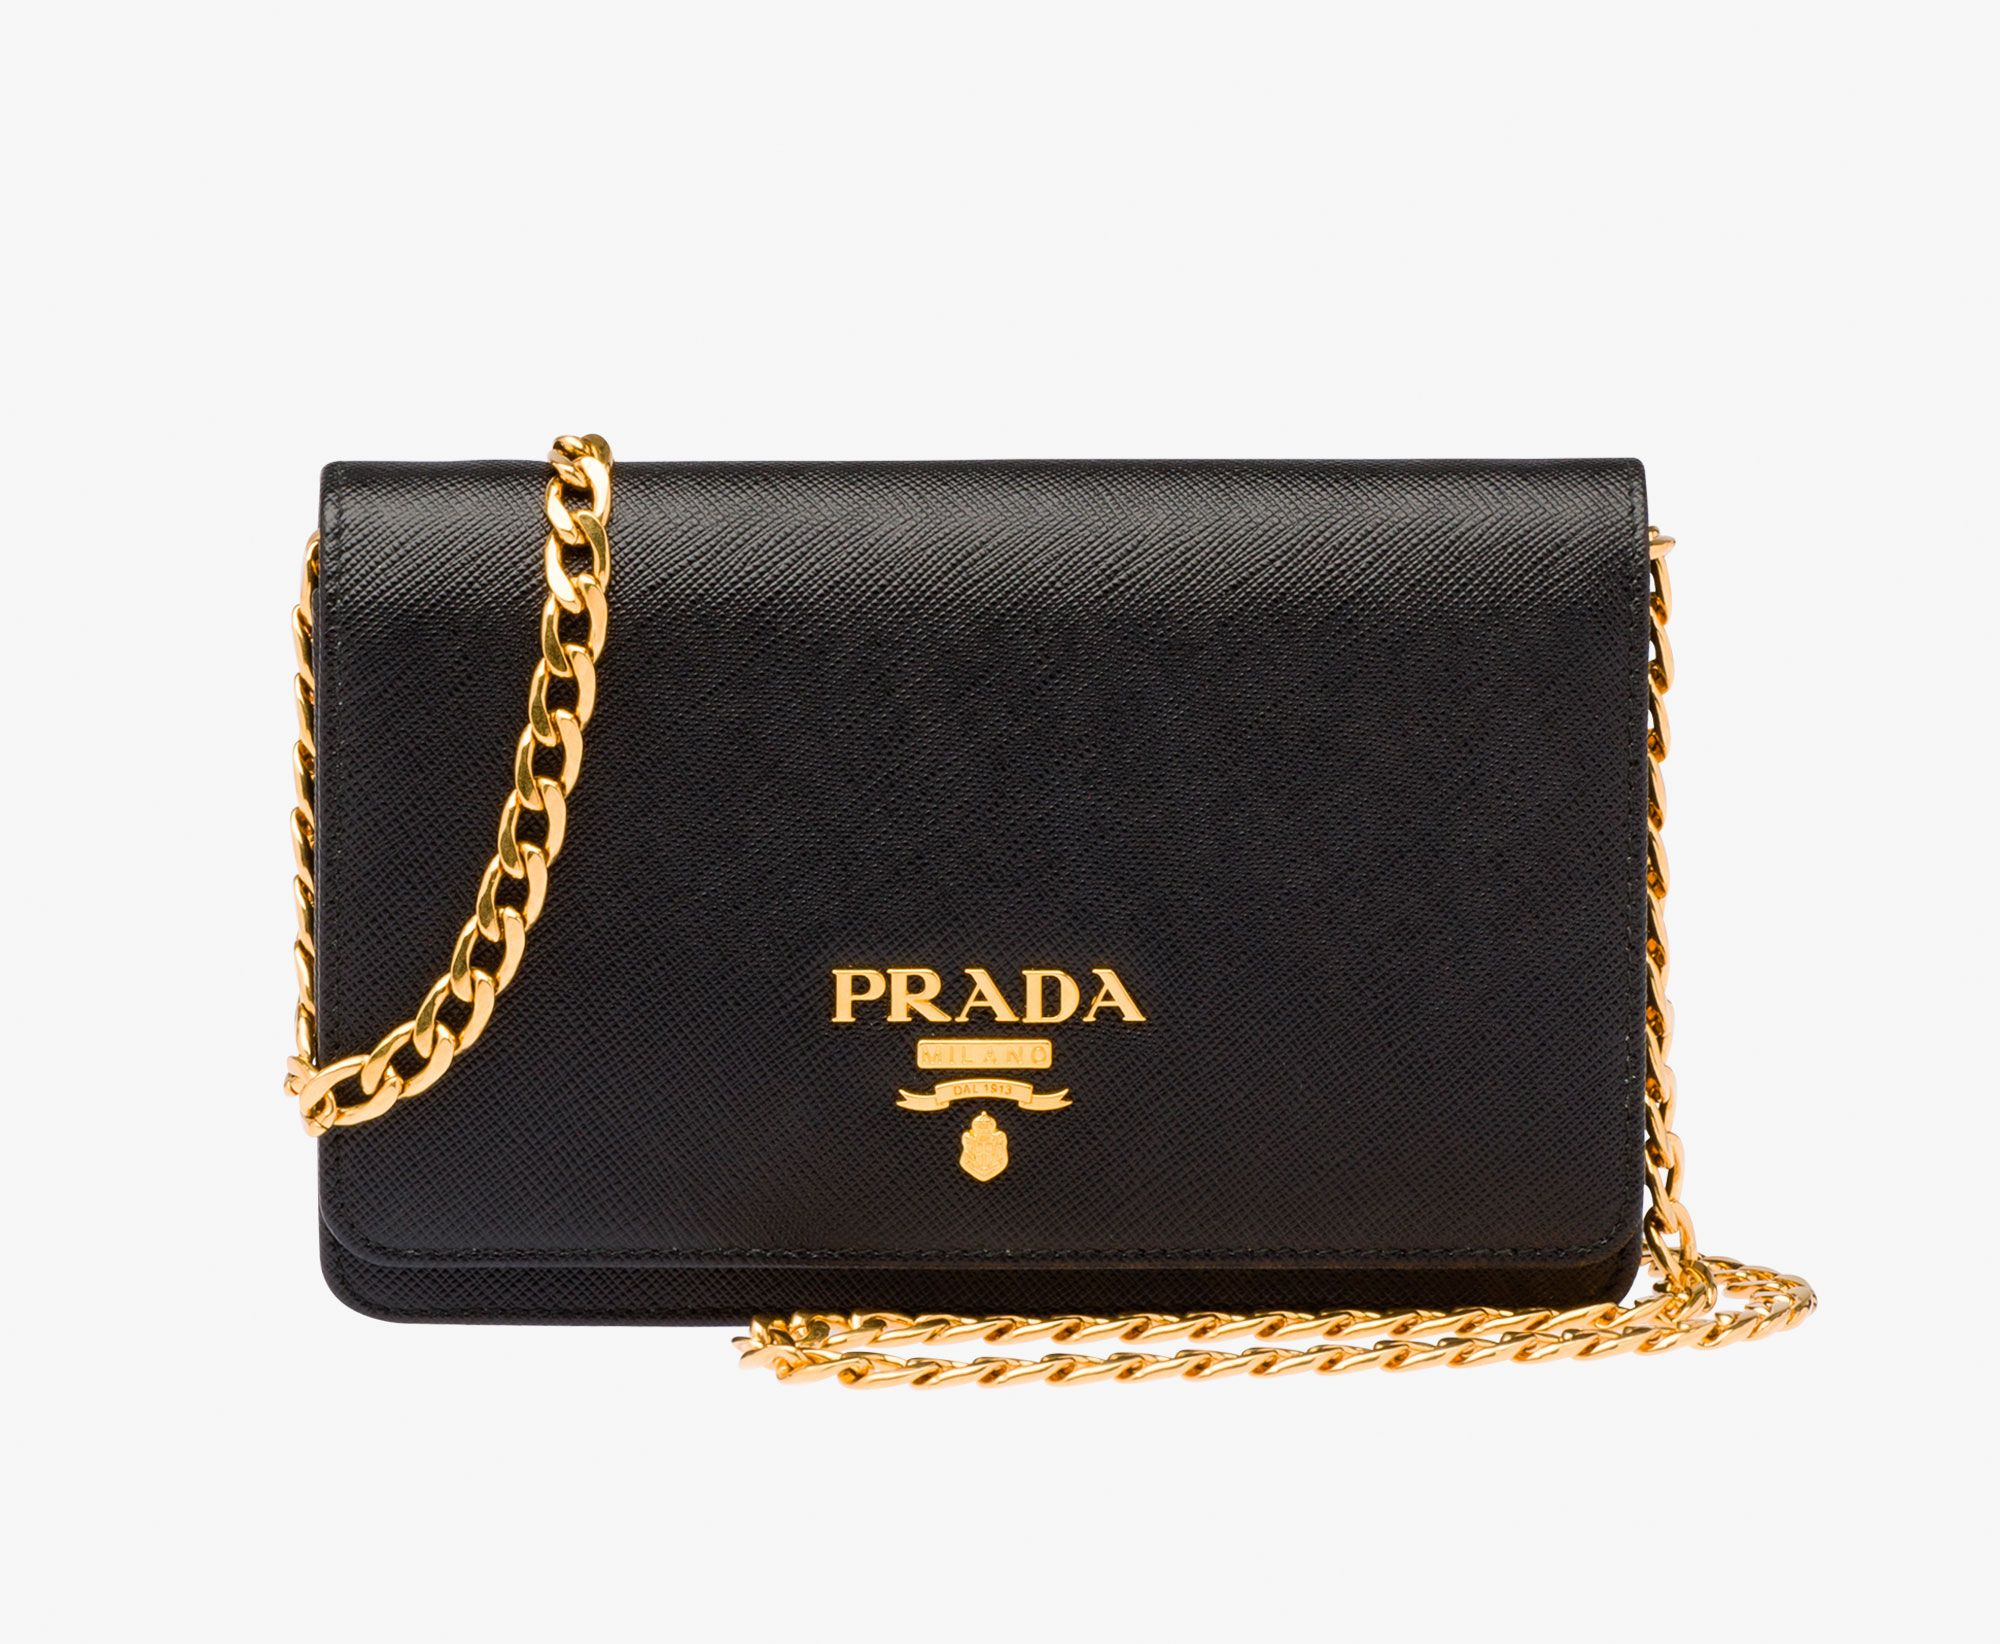 e09f878964 Small shoulder bag Metal chain shoulder strap Brass hardware Metal  lettering logo Small mirror underneath the flap One inside pocket with  zipper and several ...